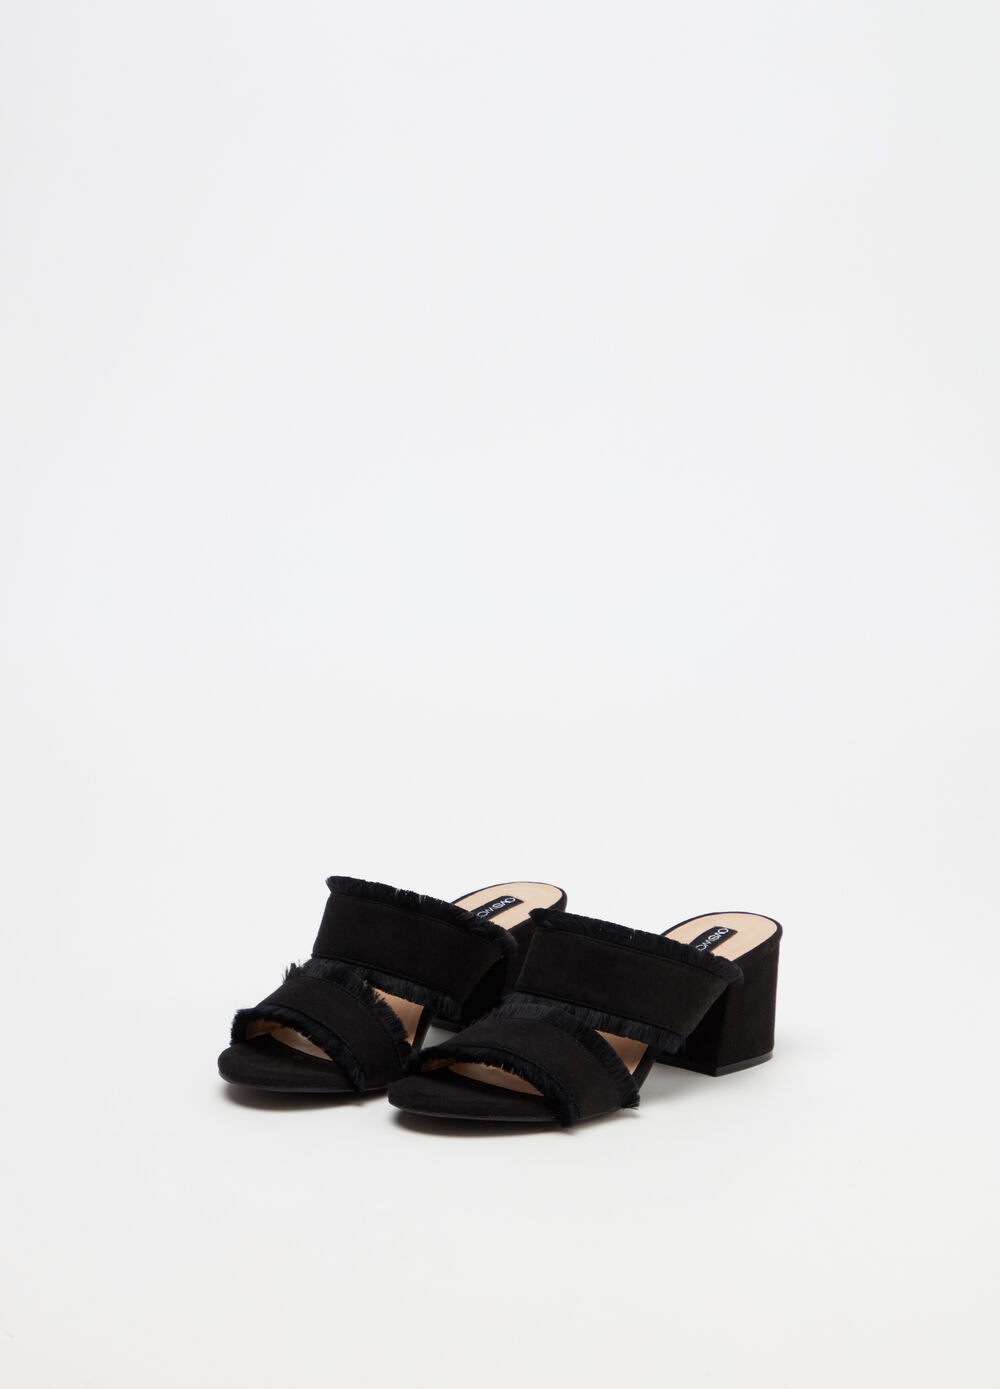 Sandals with straps and fringing